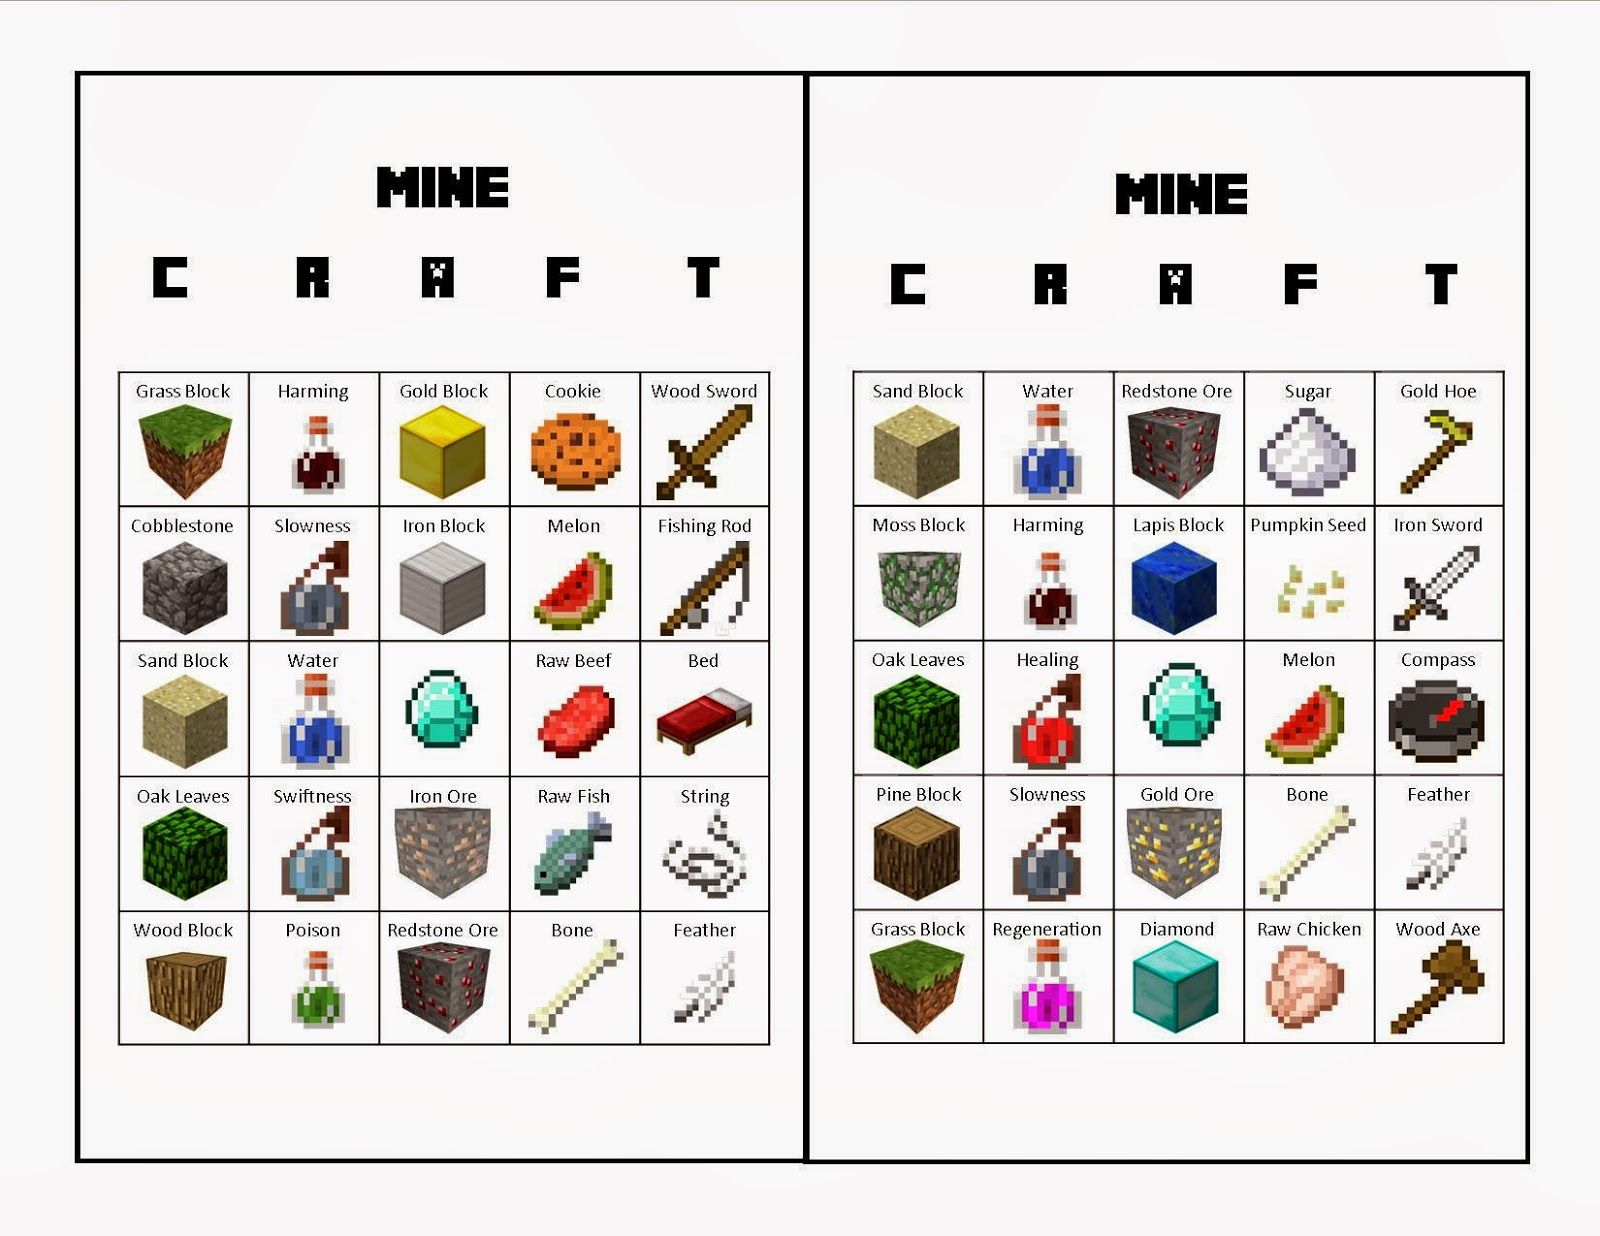 Minecraft Bingo From Life With Squeaker: The Upside Link